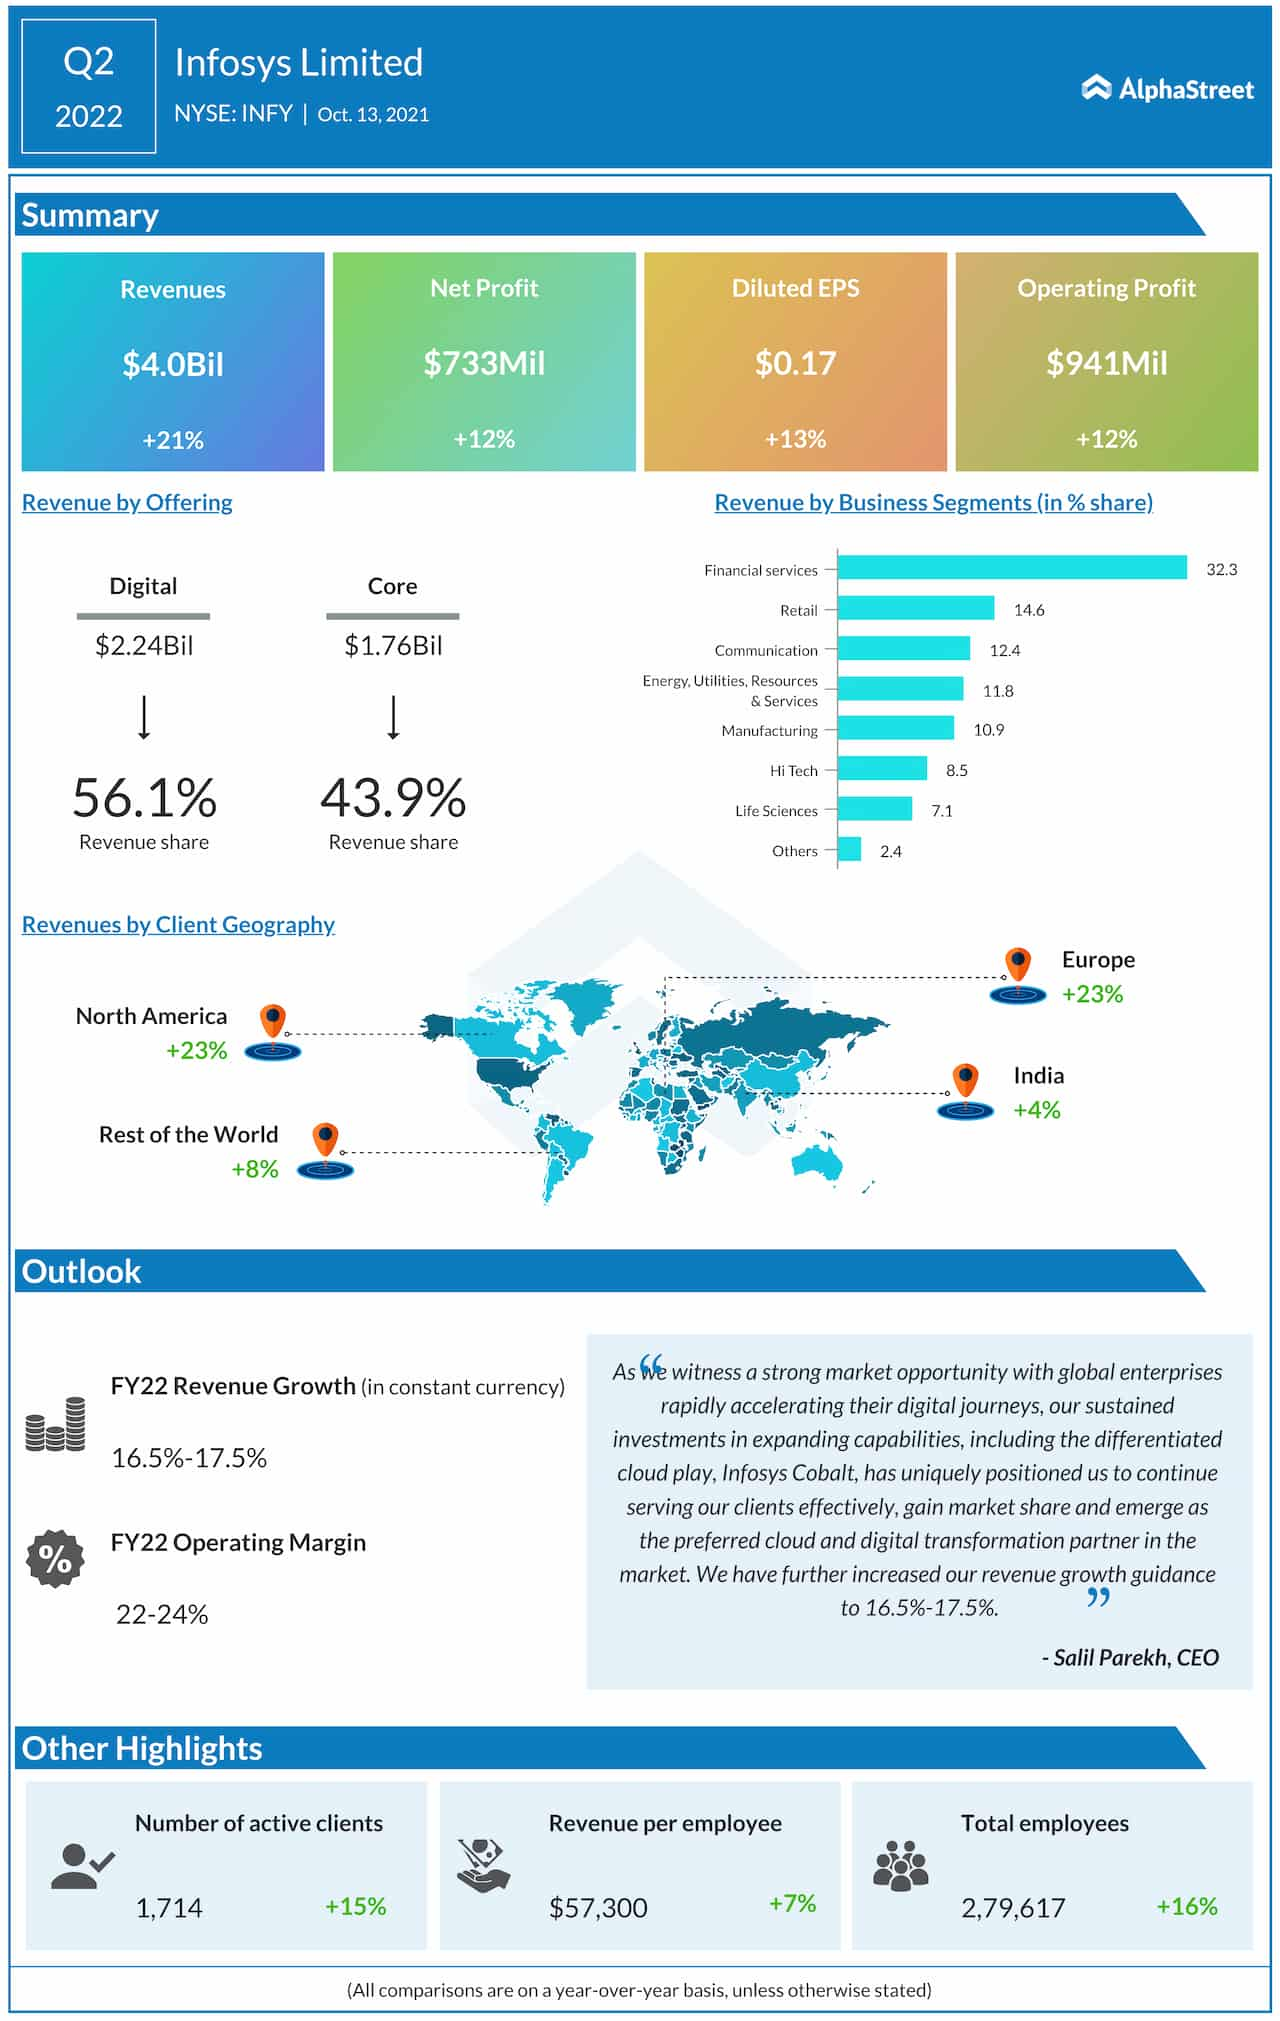 Infosys Limited Q2 2022 earnings infographic